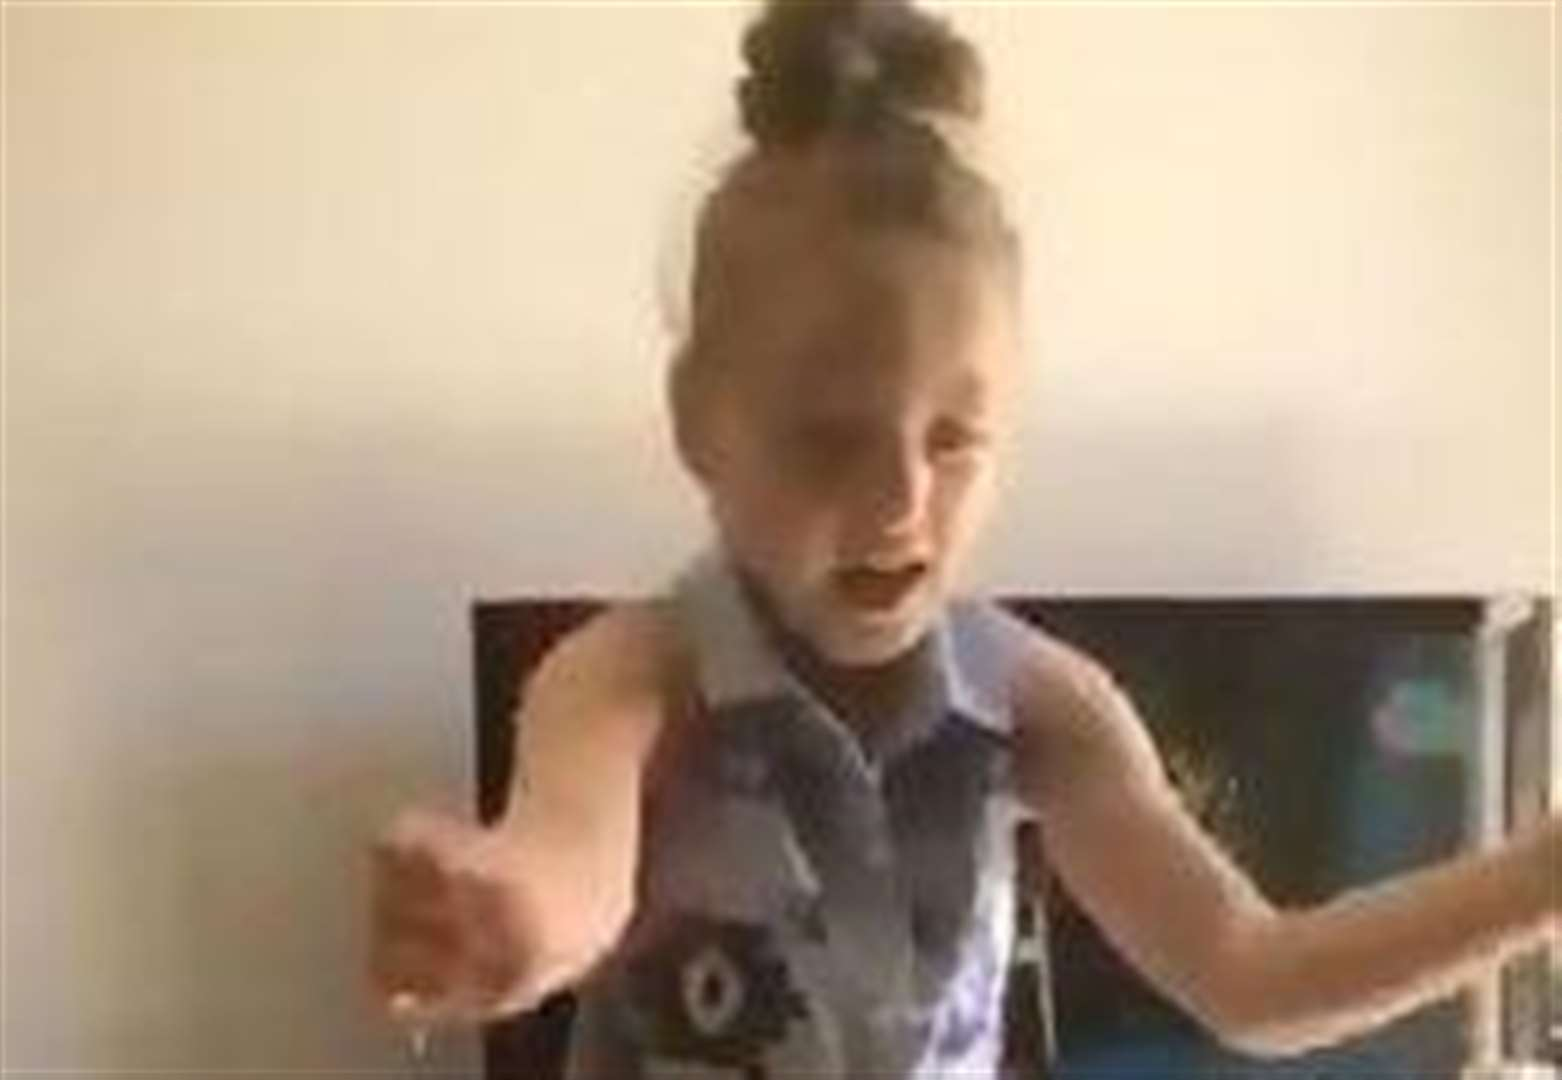 Watch: Girl, 6, dances for first time after surgery